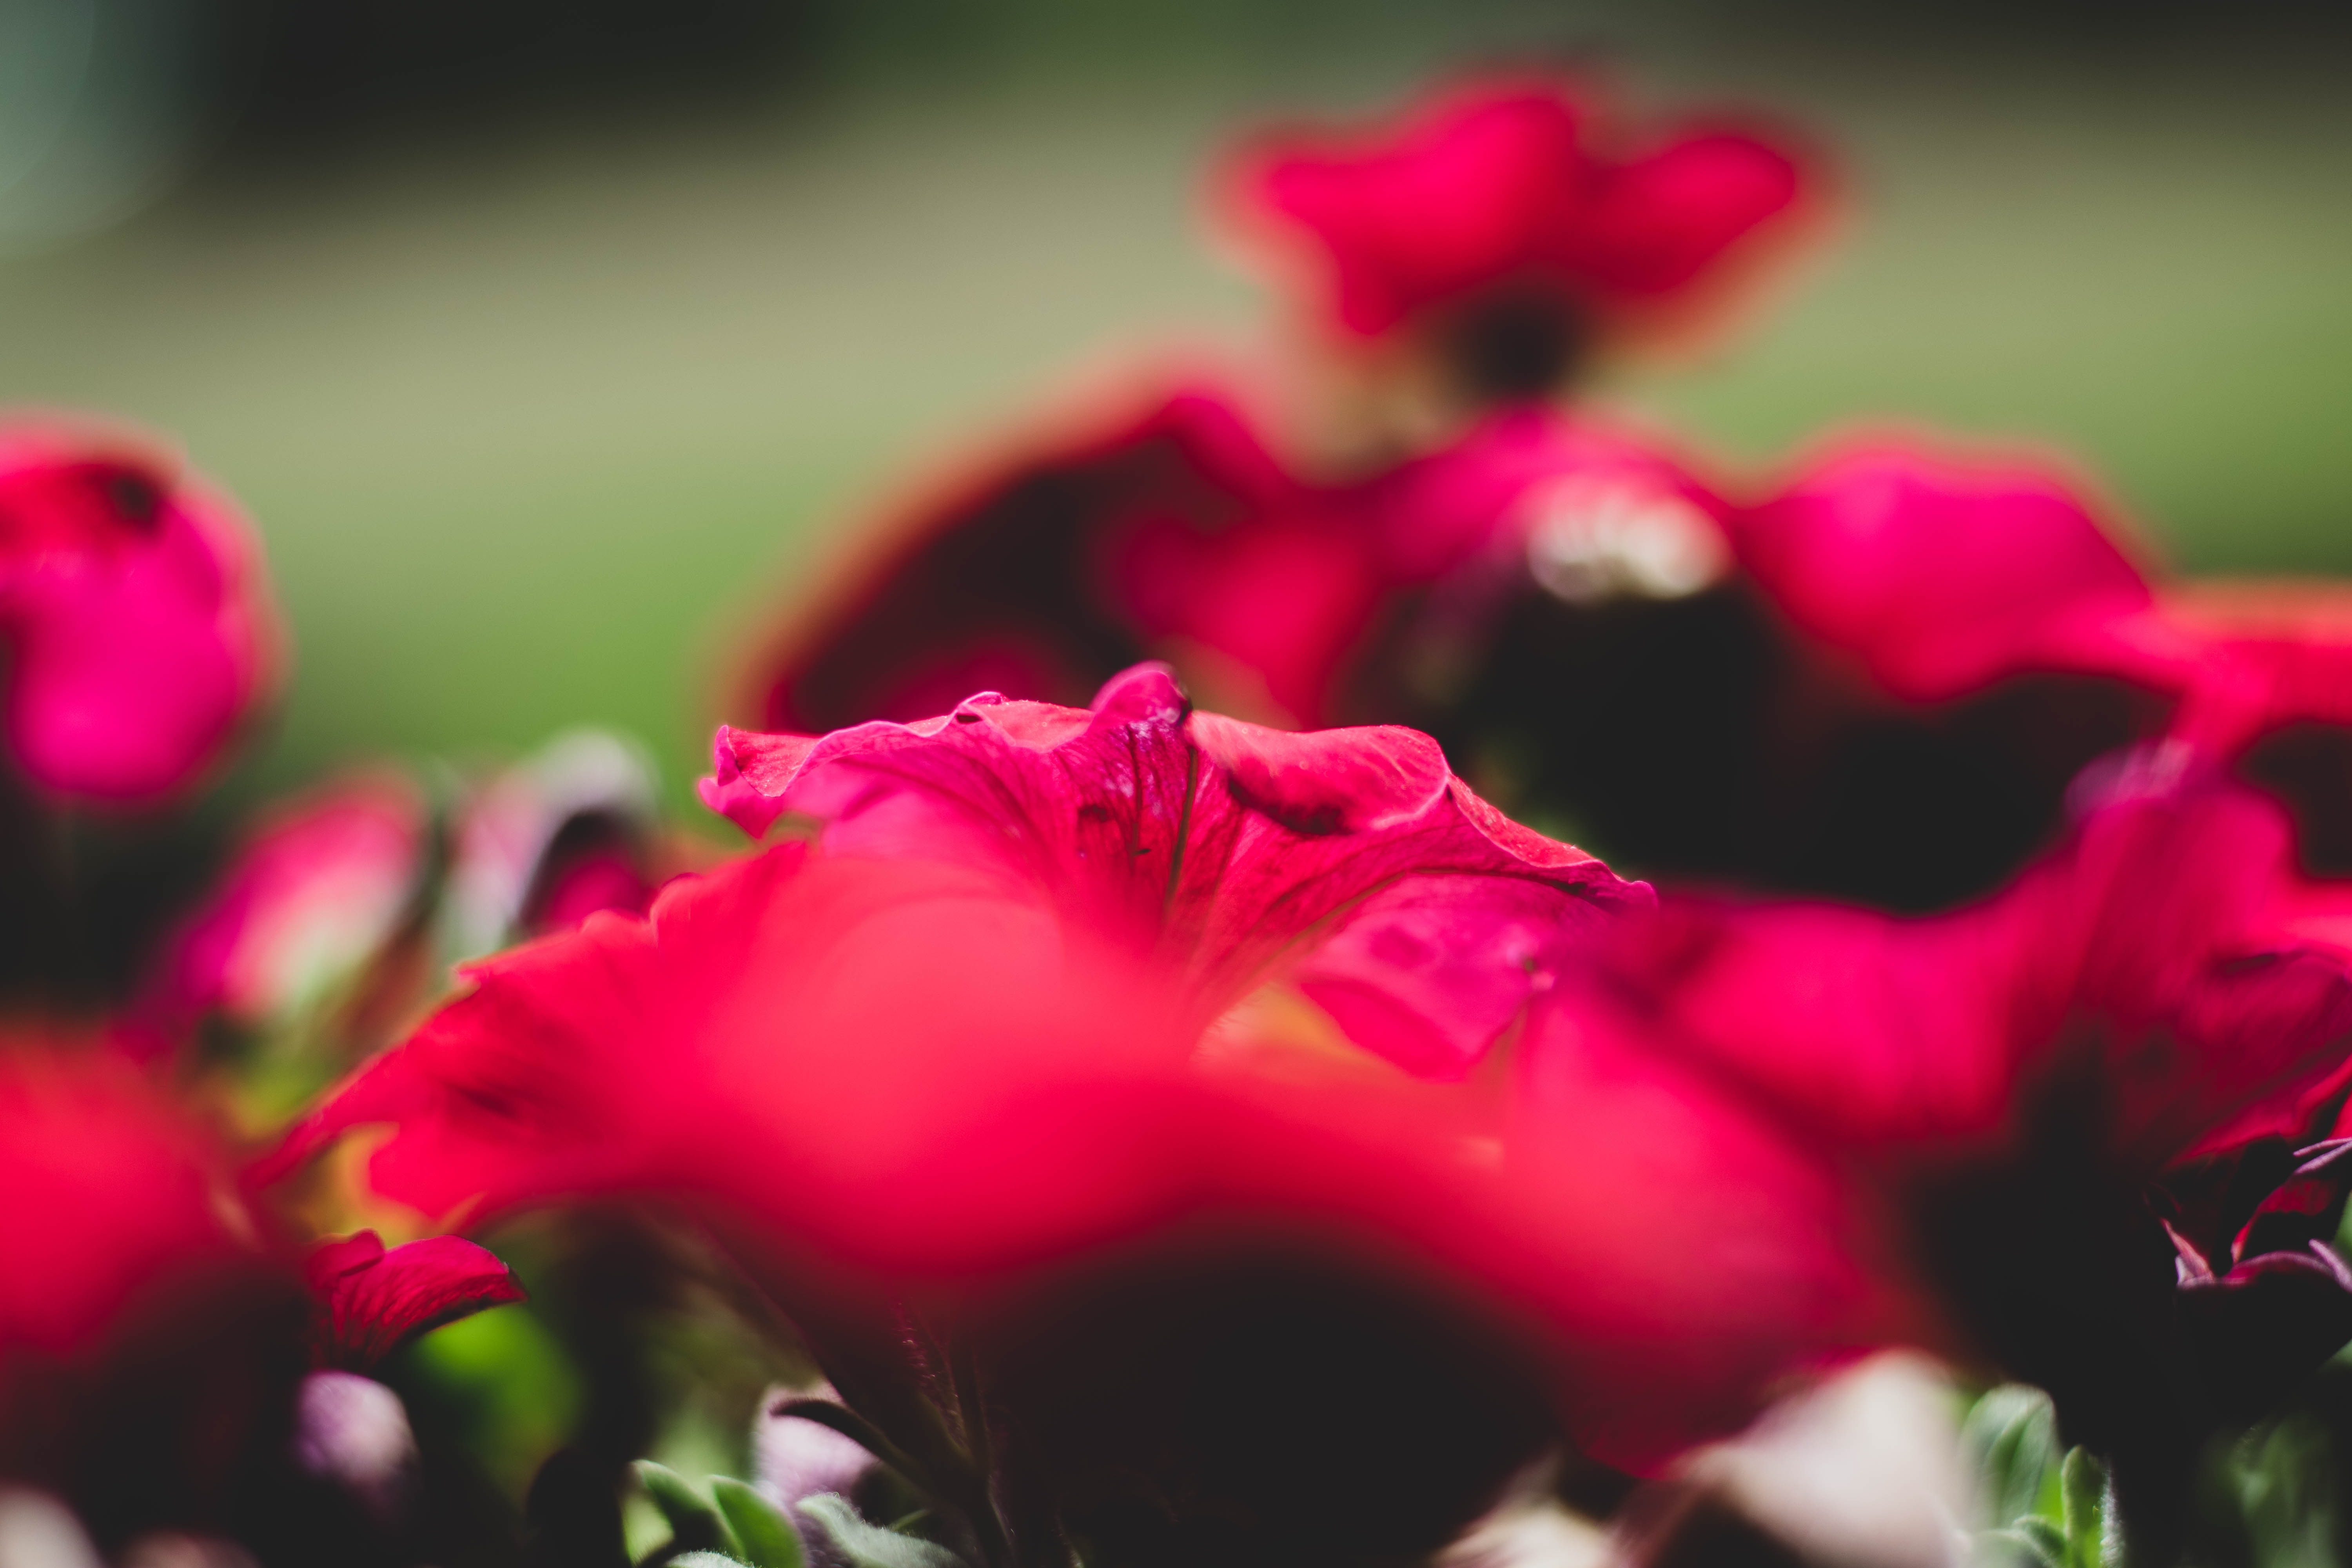 close-up photography of red flowers